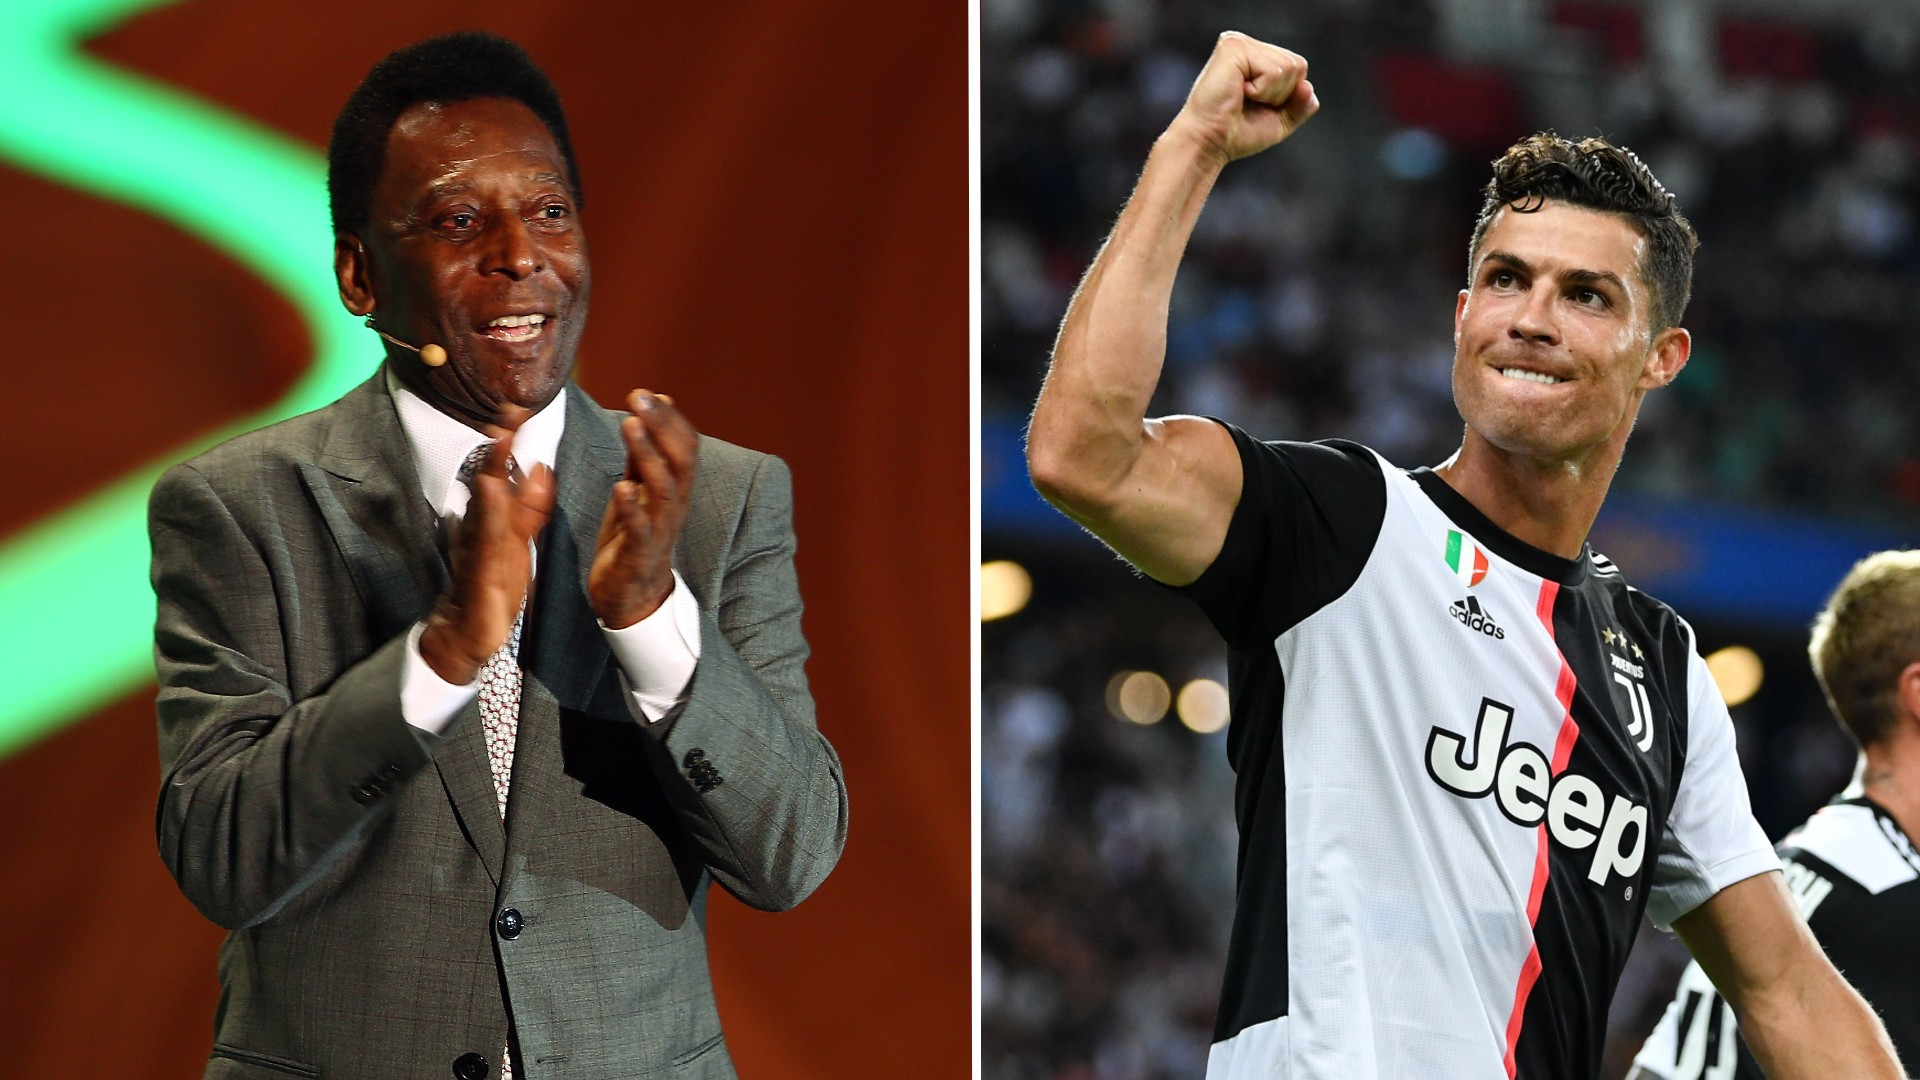 Ronaldo is the 'modern athlete', says Pele, after seeing Juventus superstar capture Serie A crown